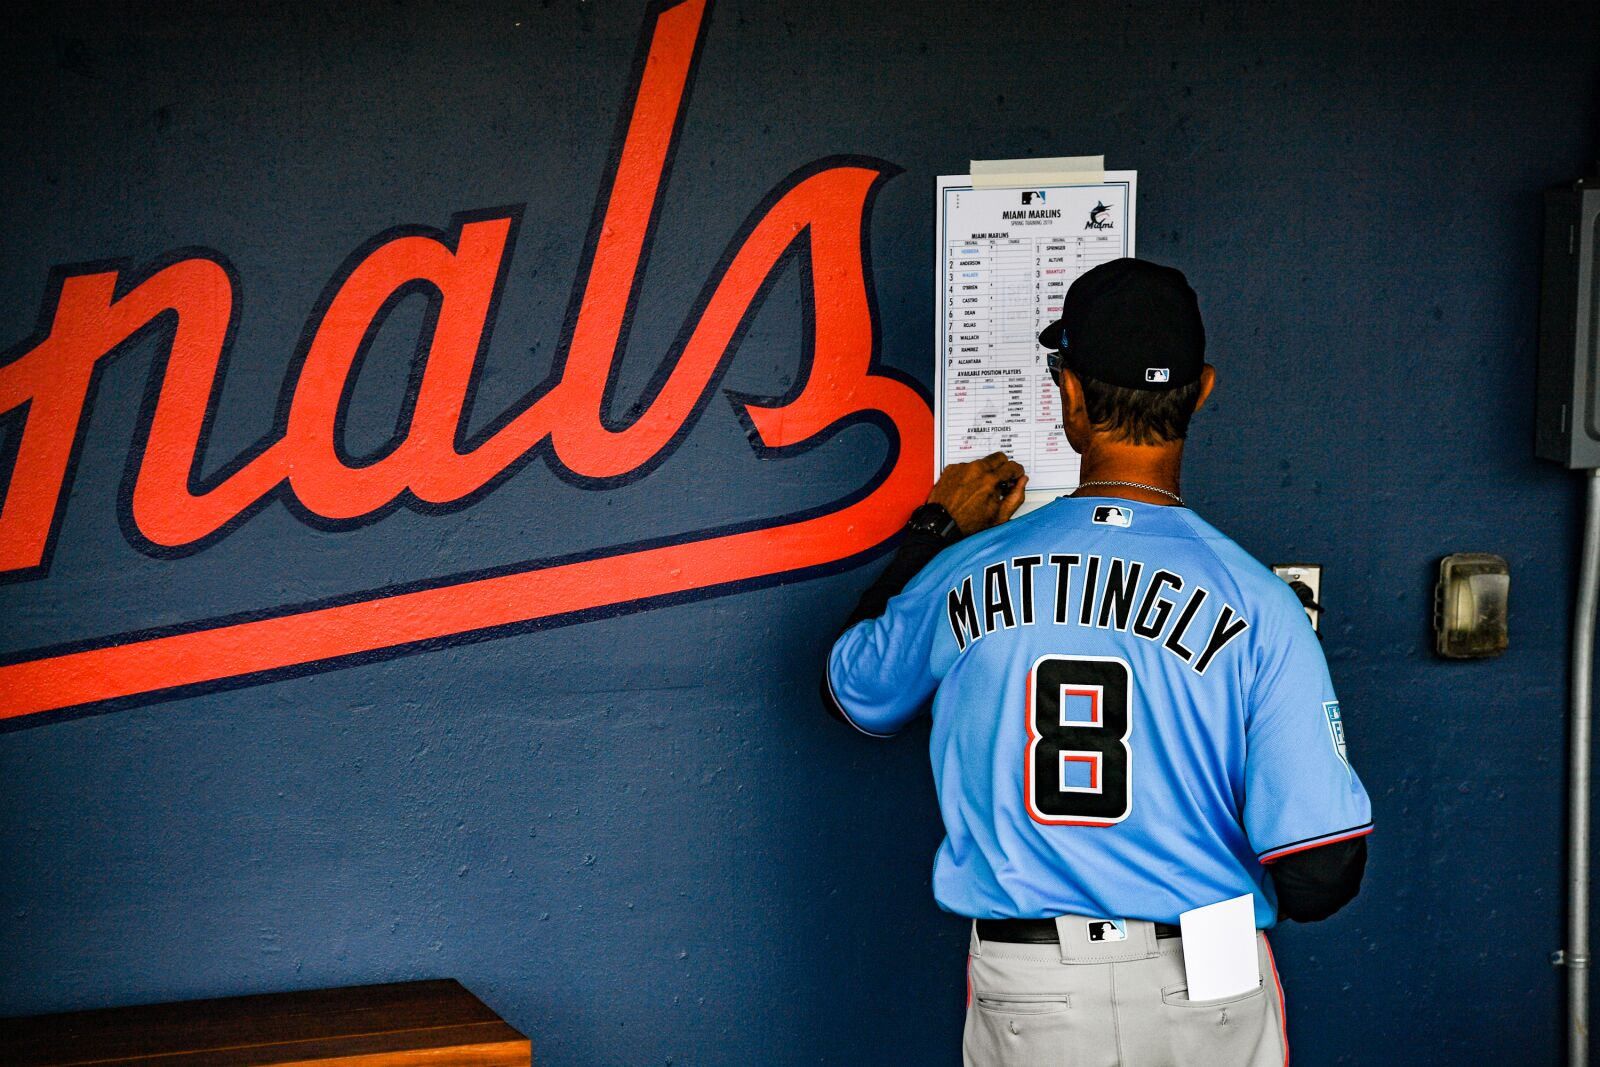 Does Don Mattingly remain the manager of the Marlins in 2020?